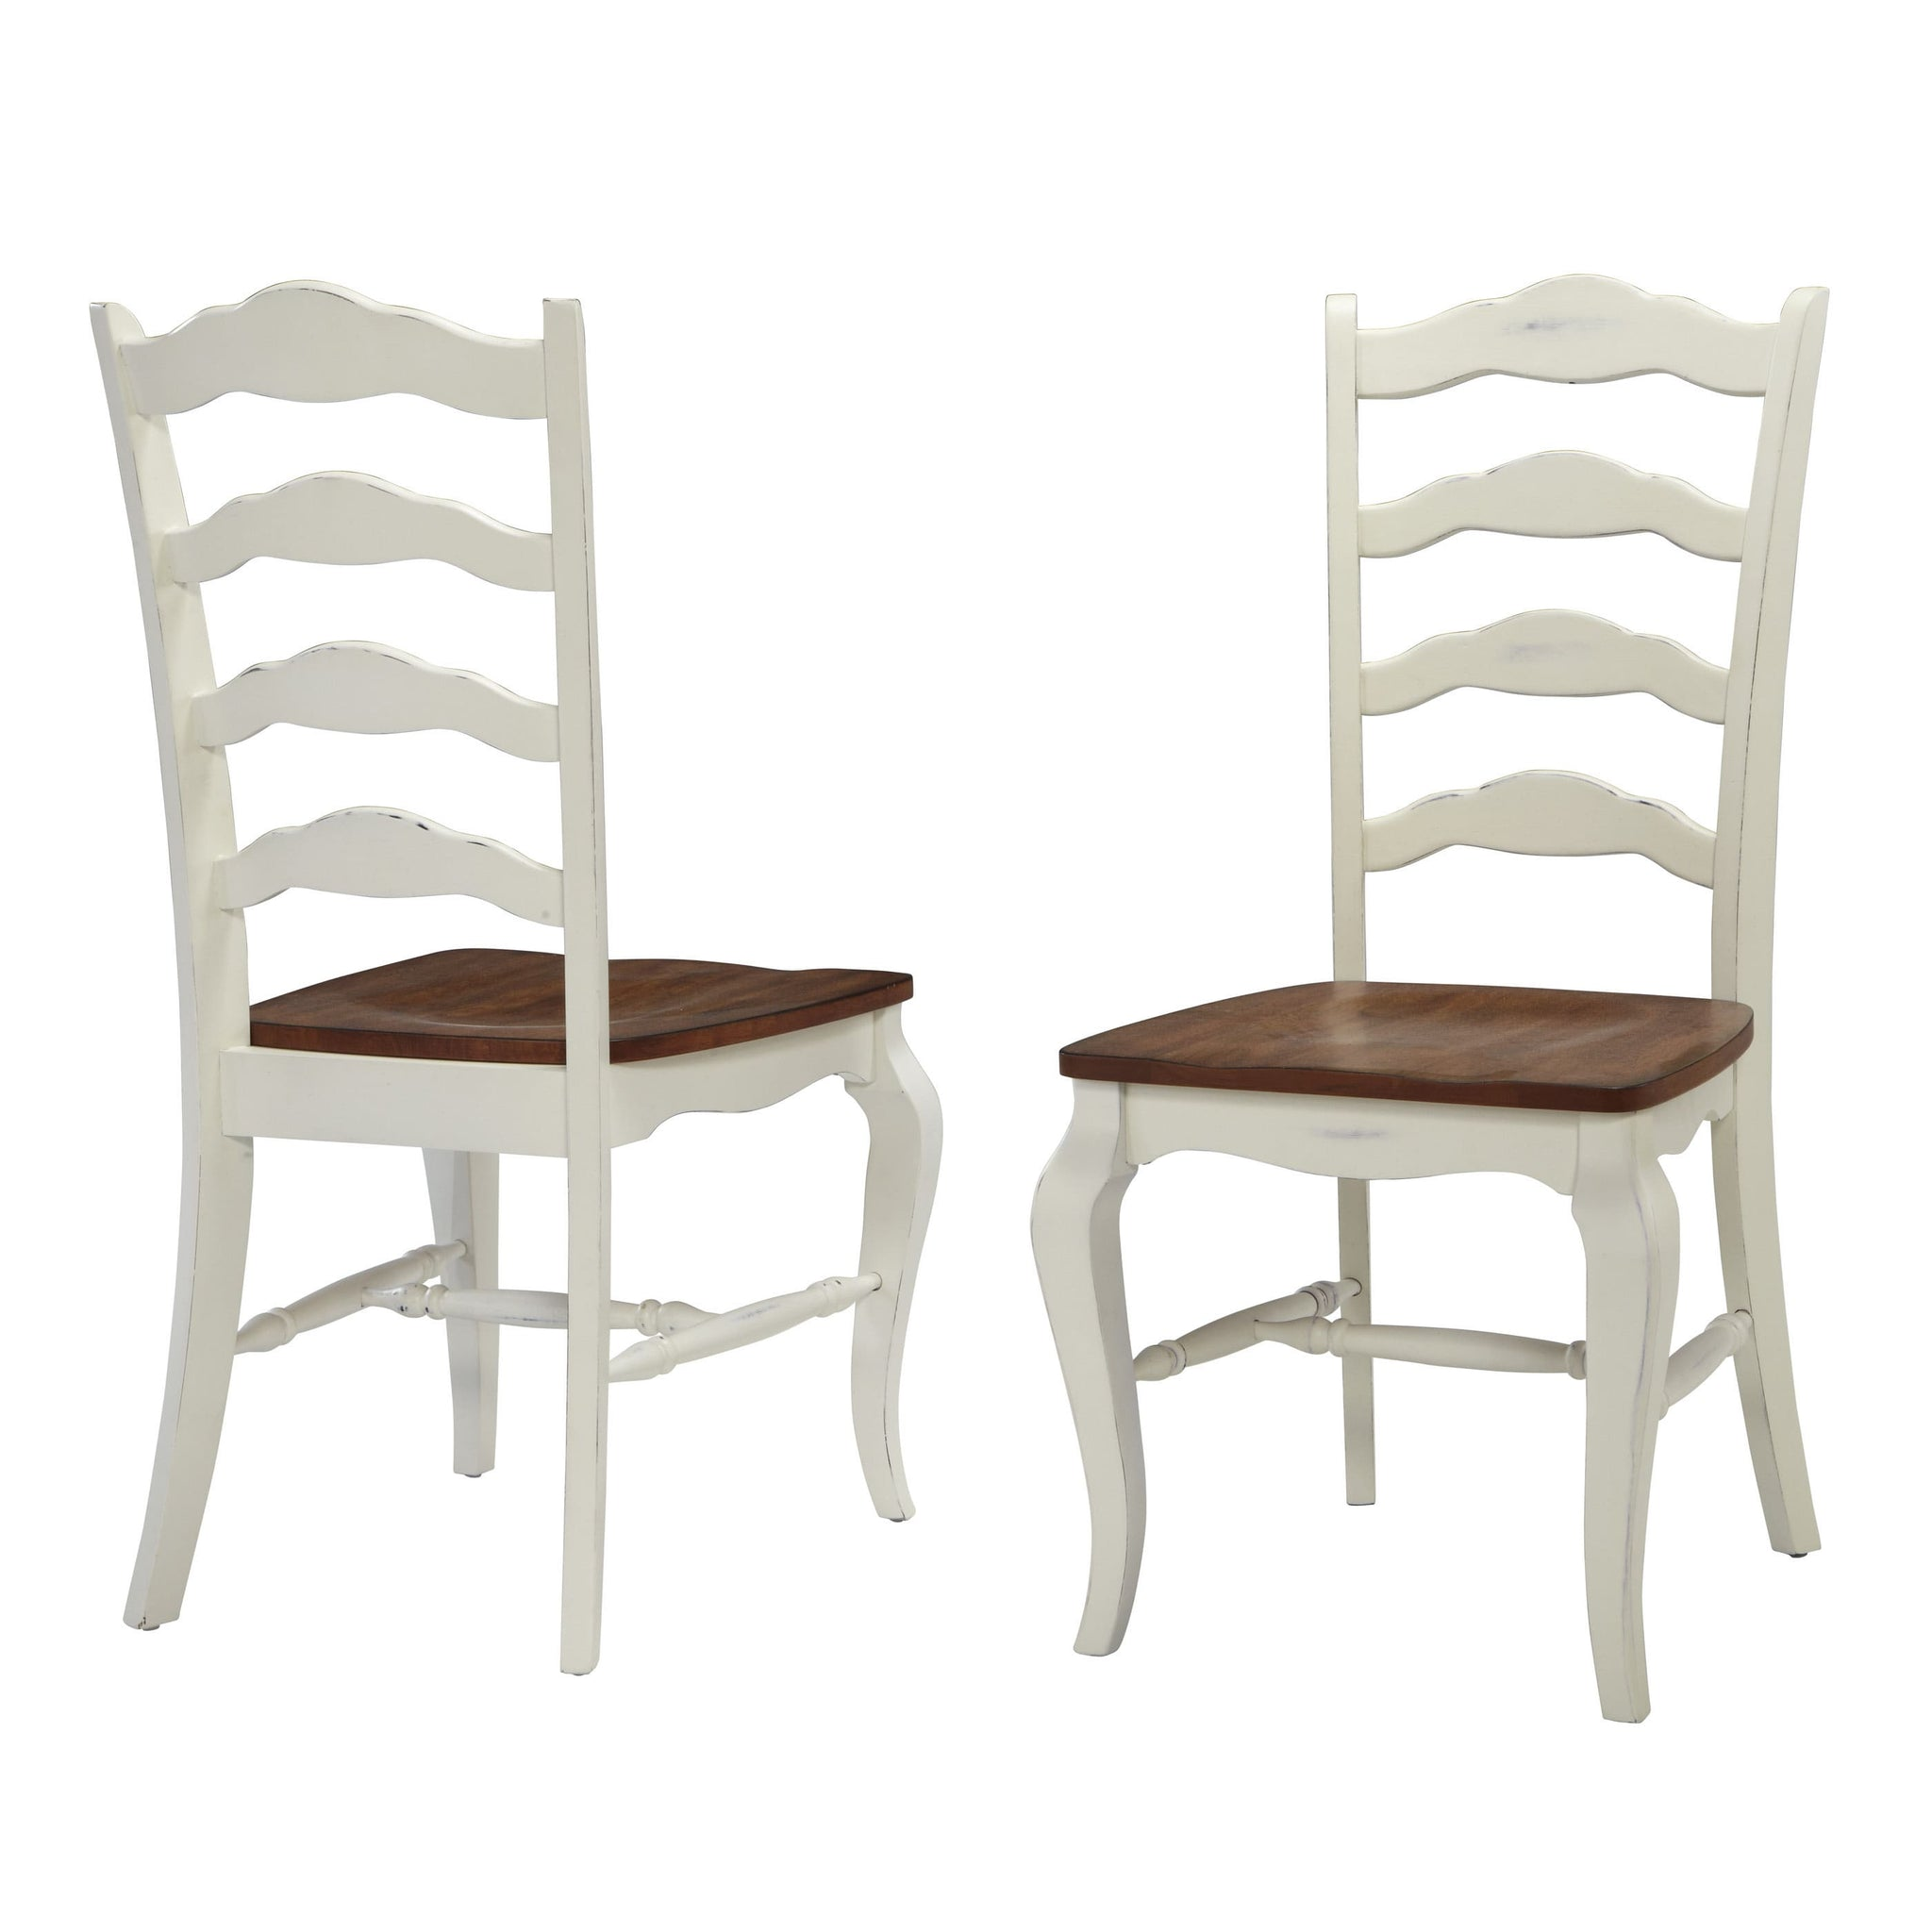 Two-piece Dining Chair